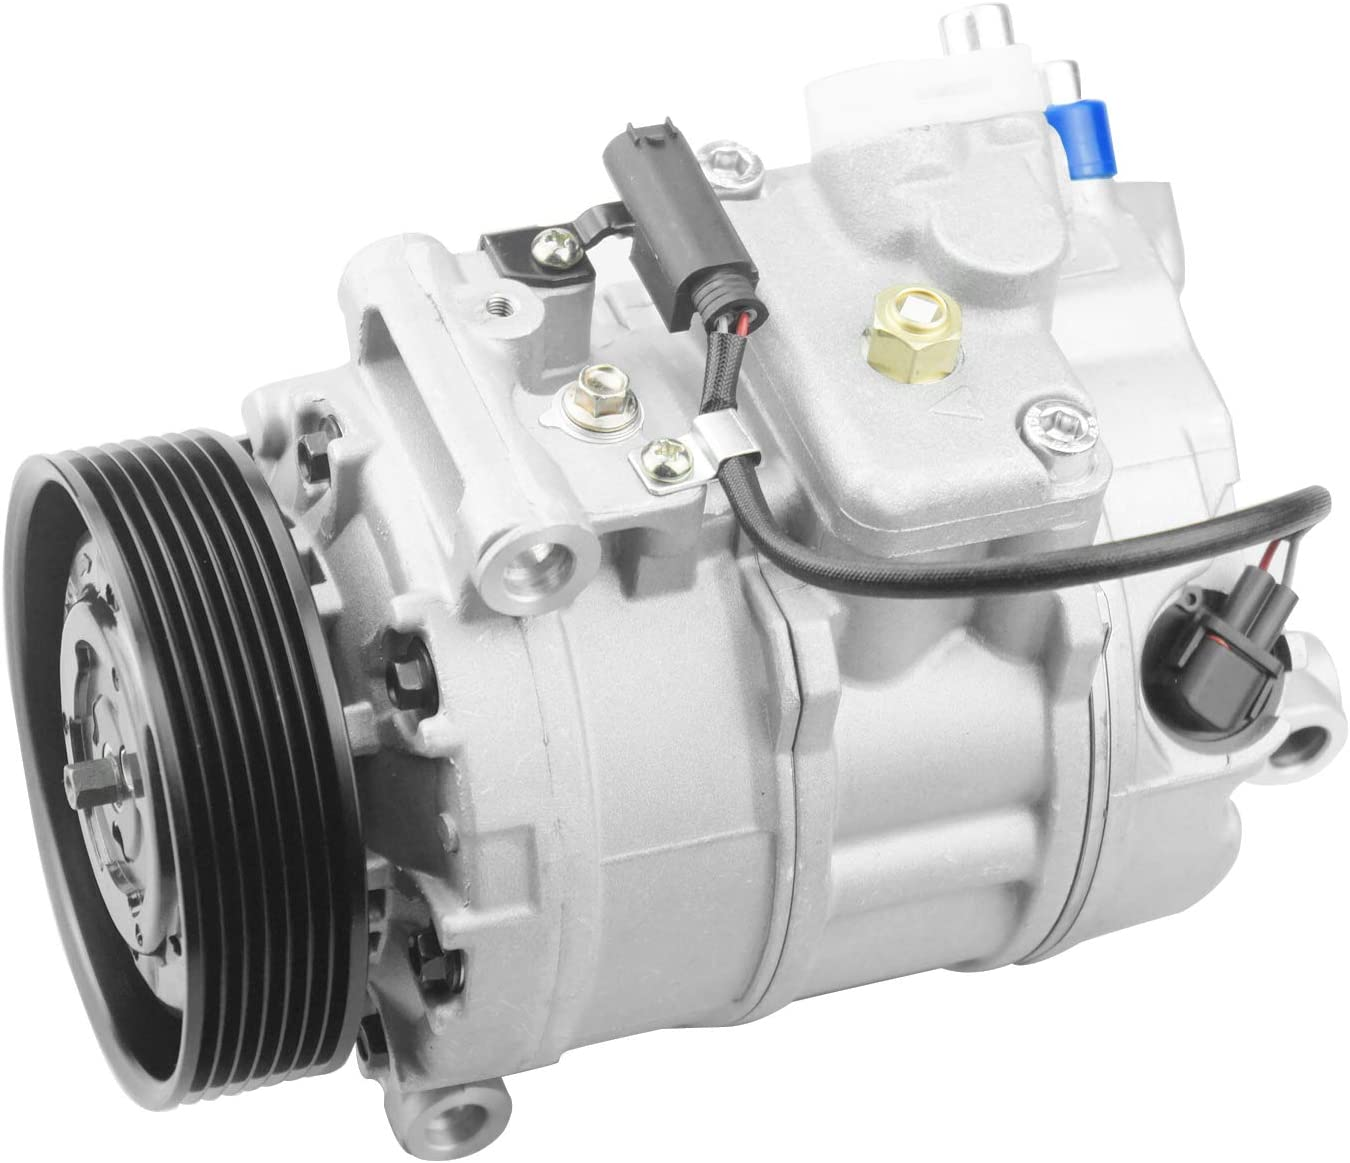 Vooviro Excellent 1pc AC Compressor Compatible With 2009-2016 BMW 1 Series M 135i 135is 335i 335is 335xi X1 Z4 3.0L l6